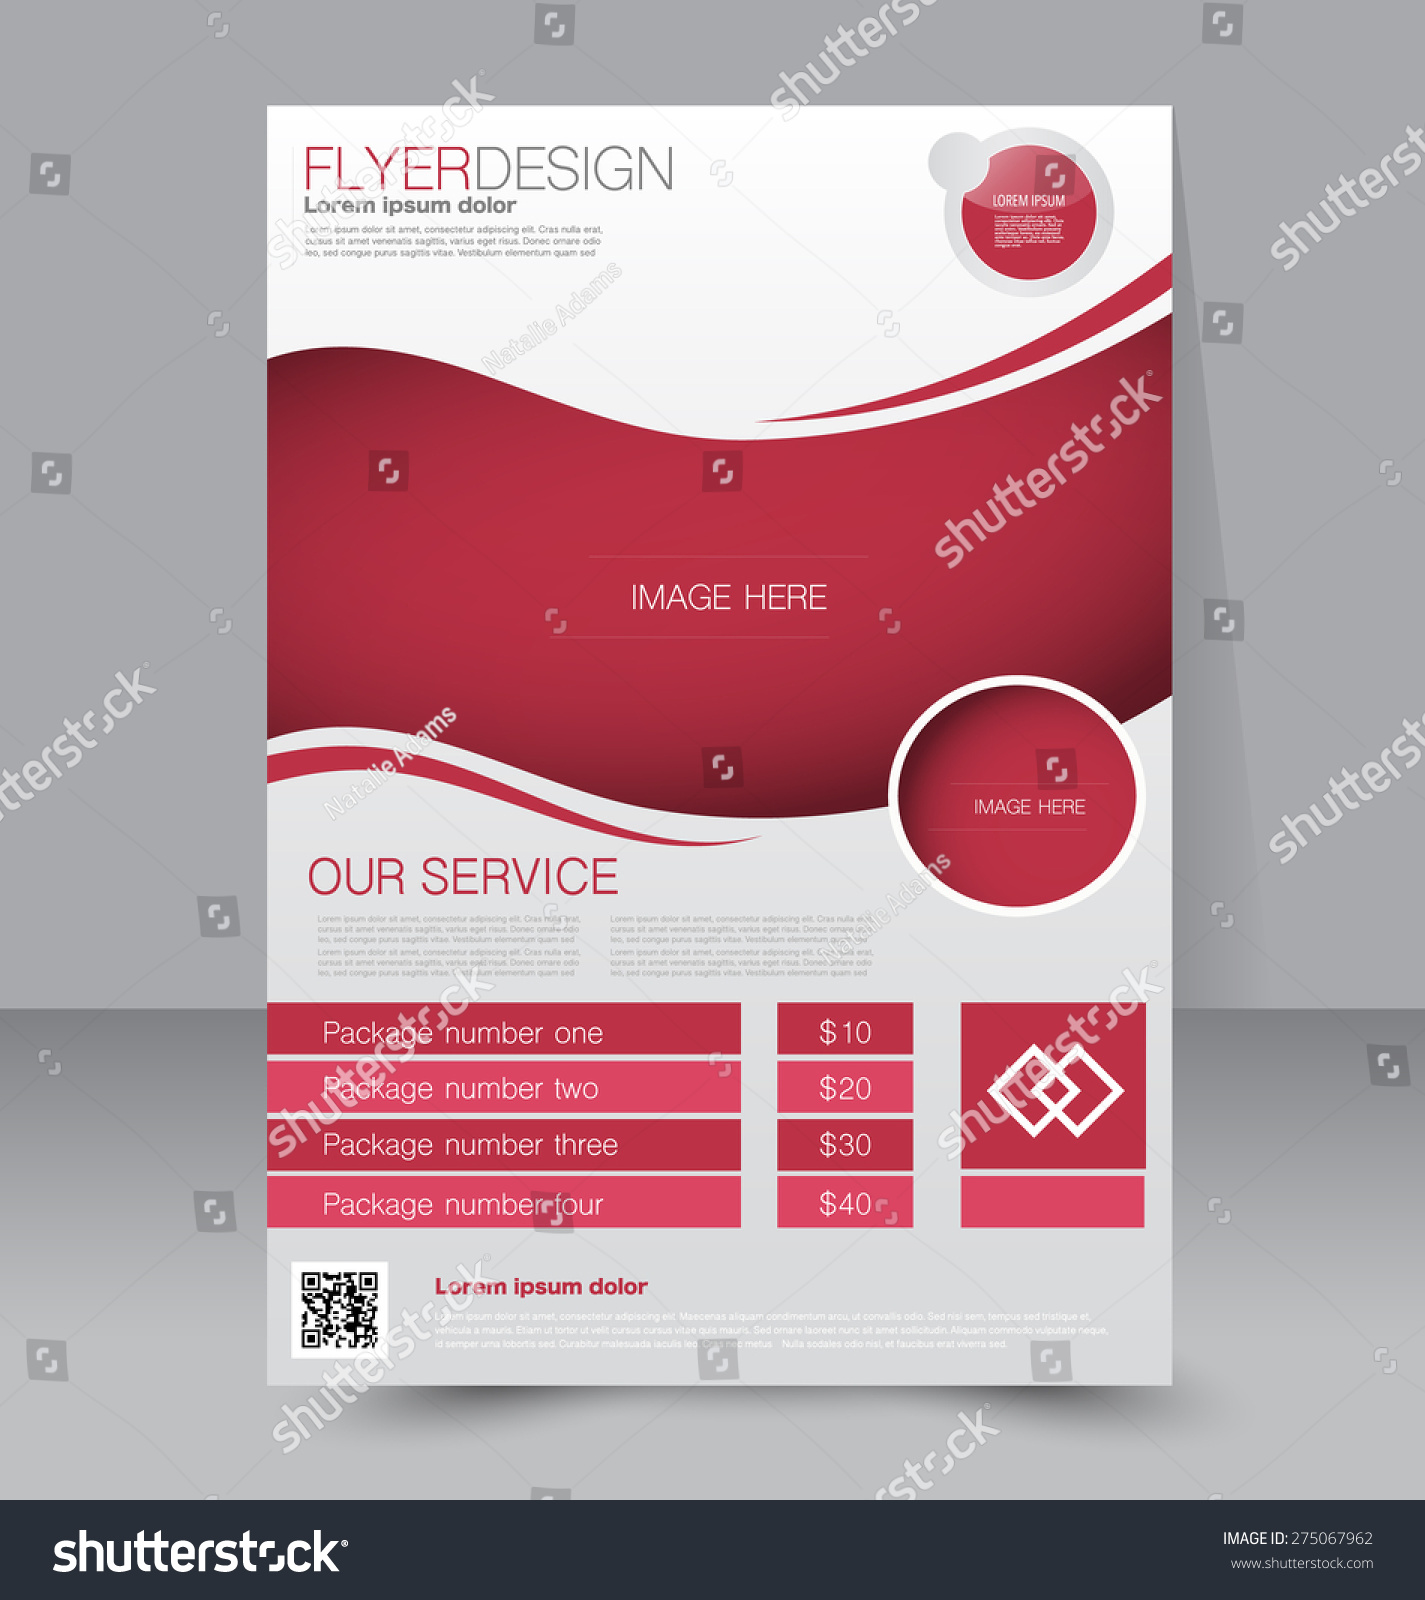 Flyer template business brochure editable a4 poster for for Editable brochure templates